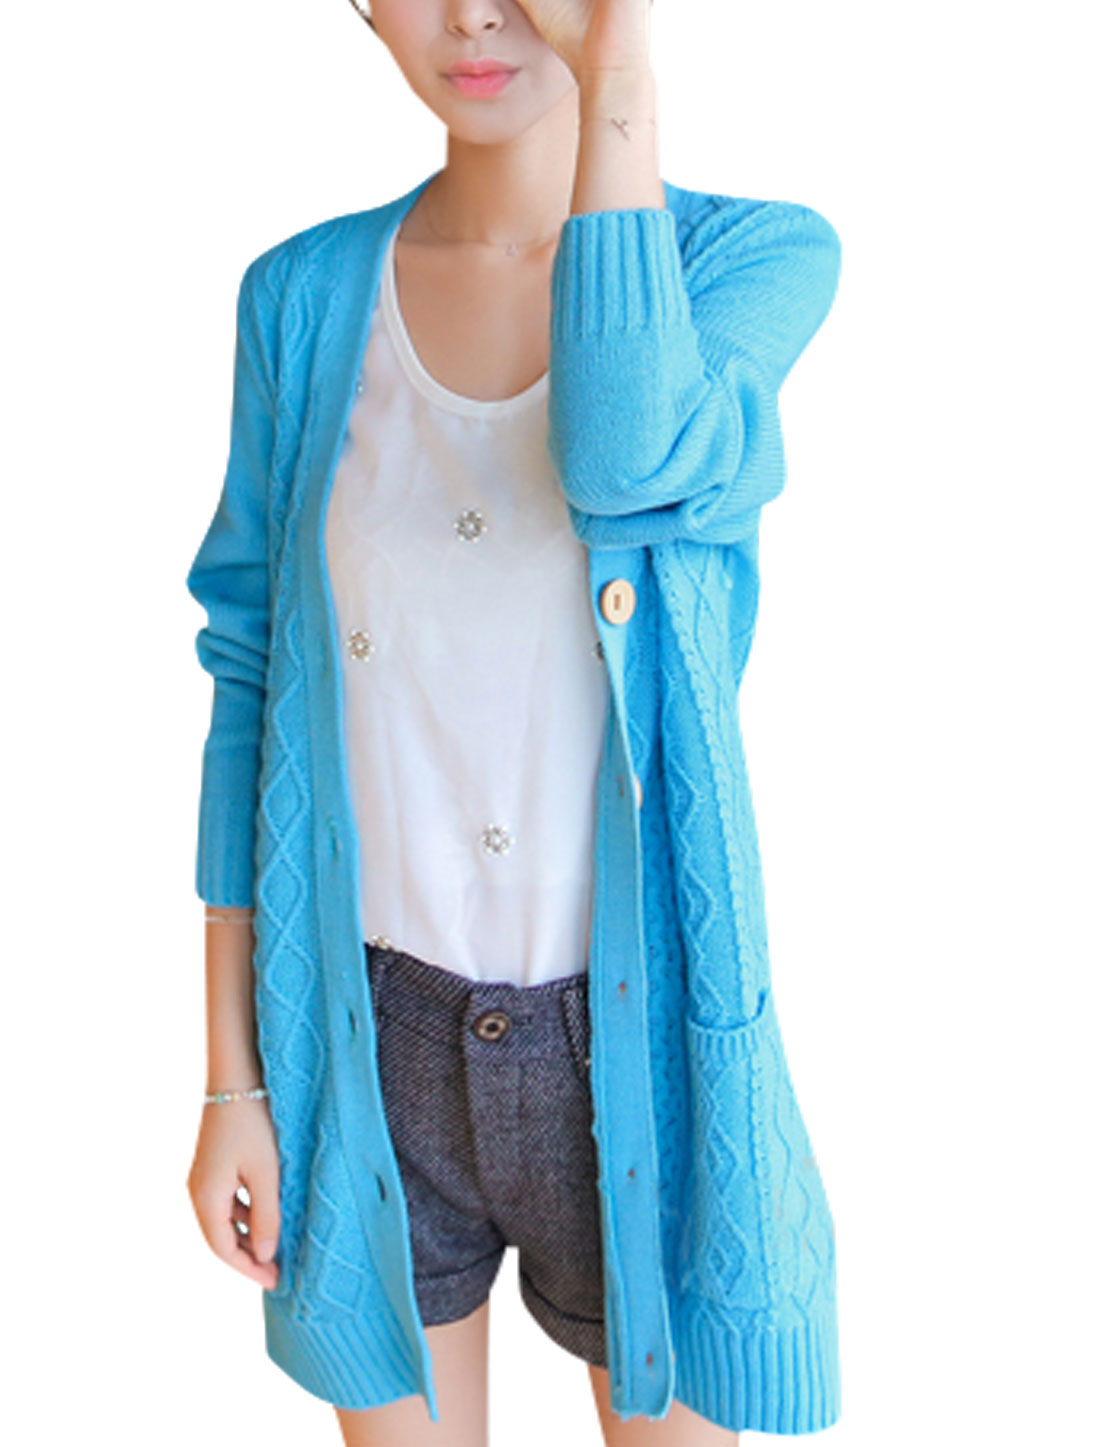 Women Fashion Deep V Neck Cable Rib Knit Design Tunic Knit Cardigan Light Blue XS